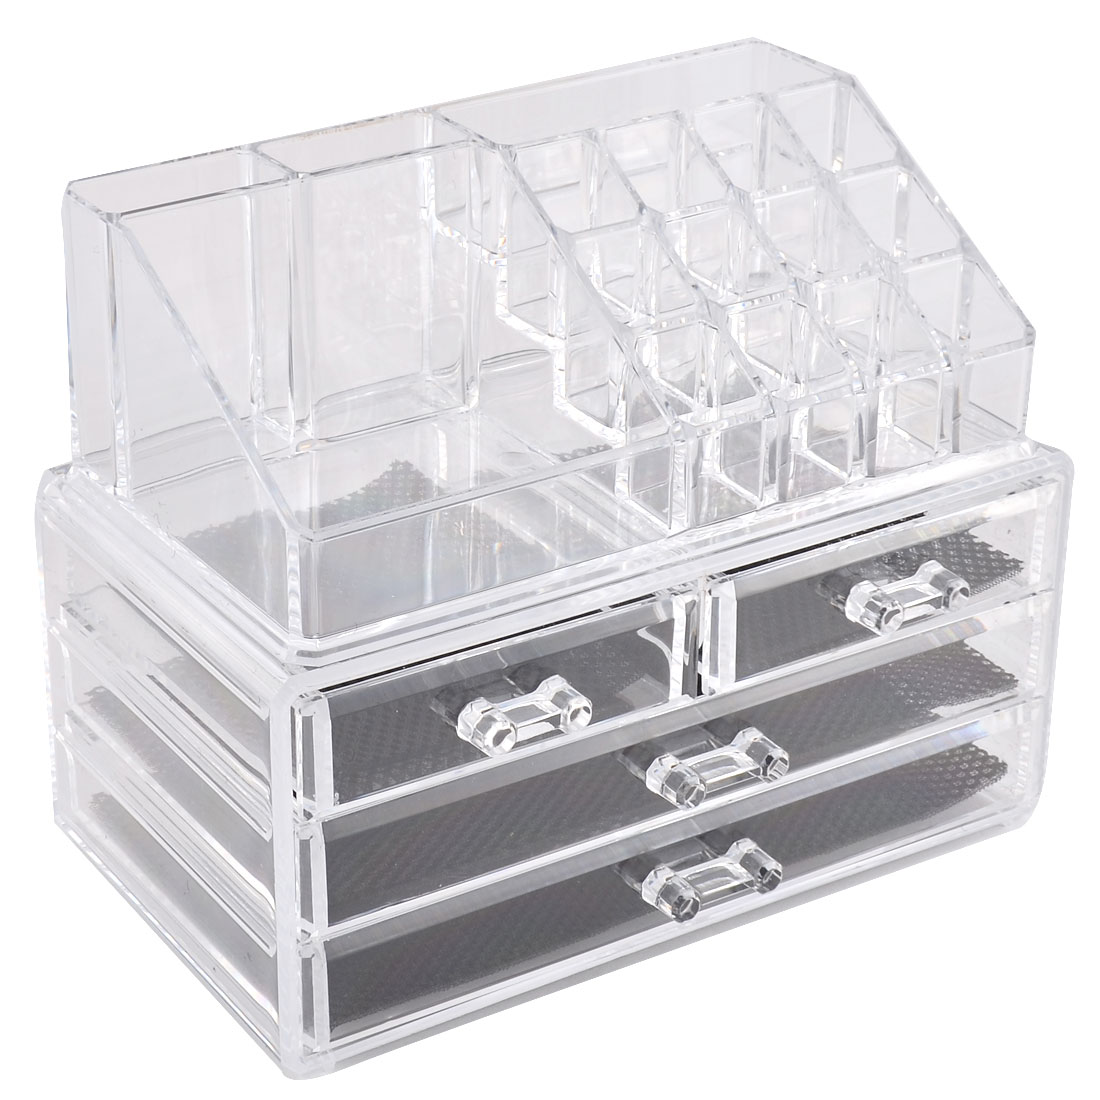 Clear Acrylic 4-drawer Makeup Tool Storage Case Display Box Jewelry Organizer Set 2 in 1